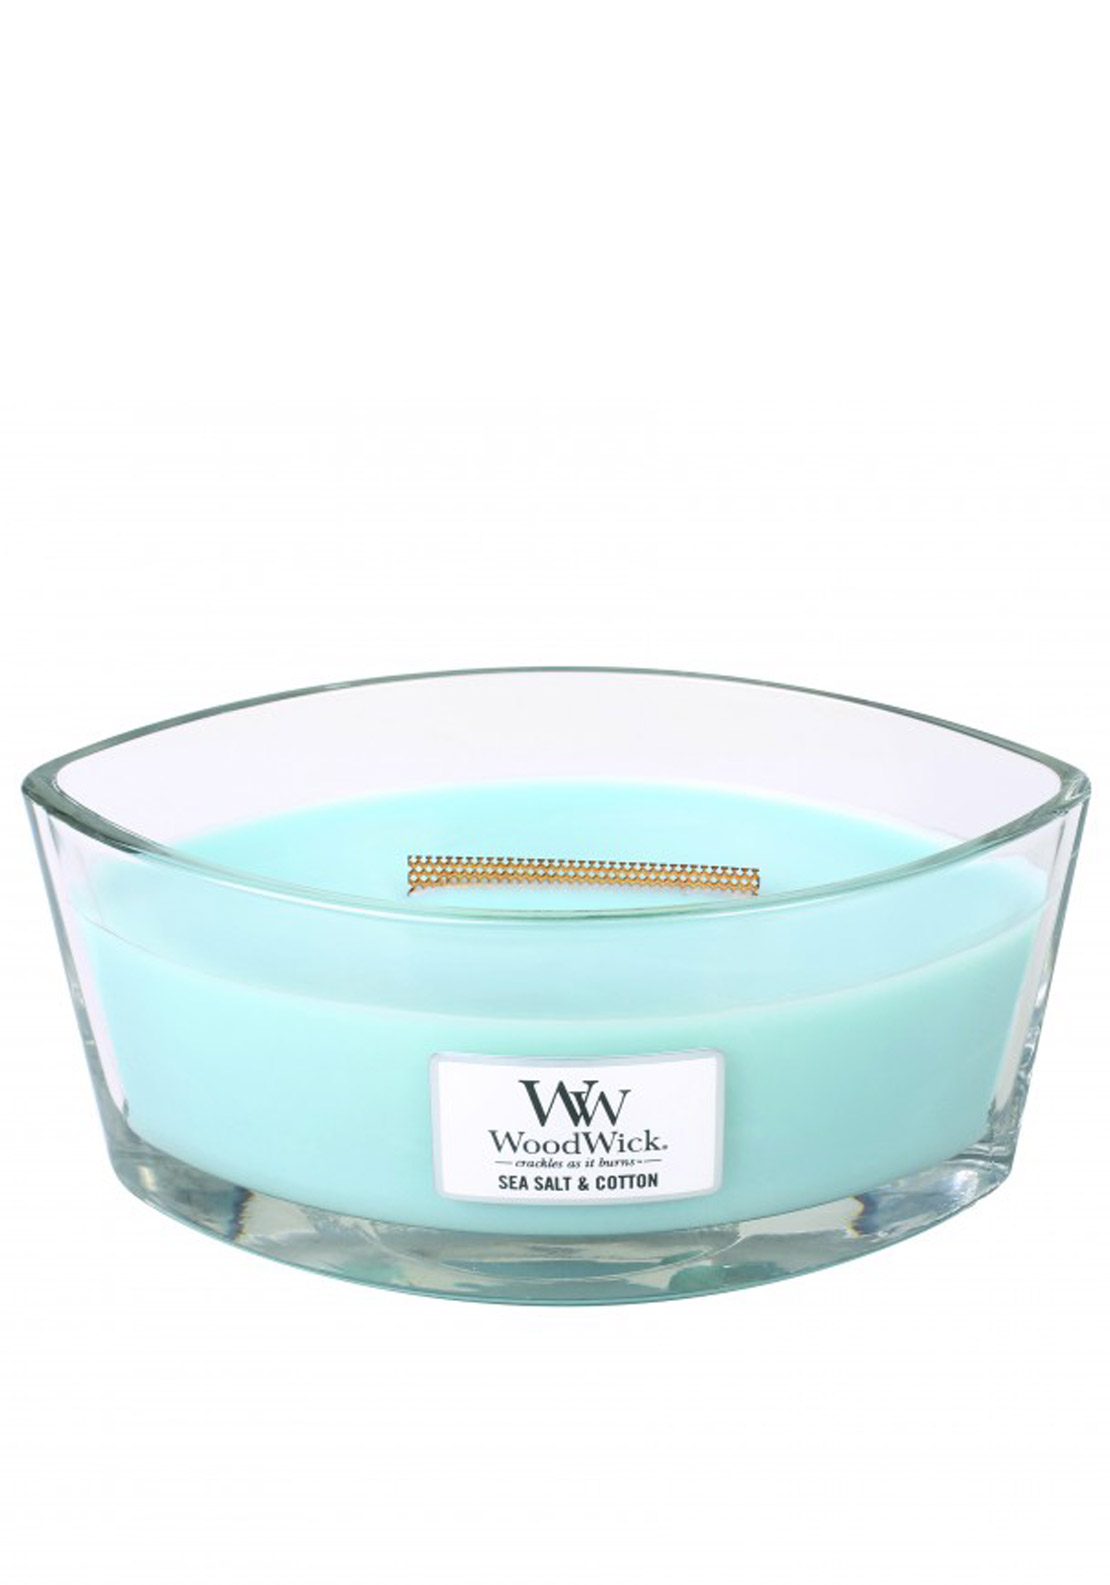 WoodWick Hearthwick Flame Large Candle, Sea Salt & Cotton